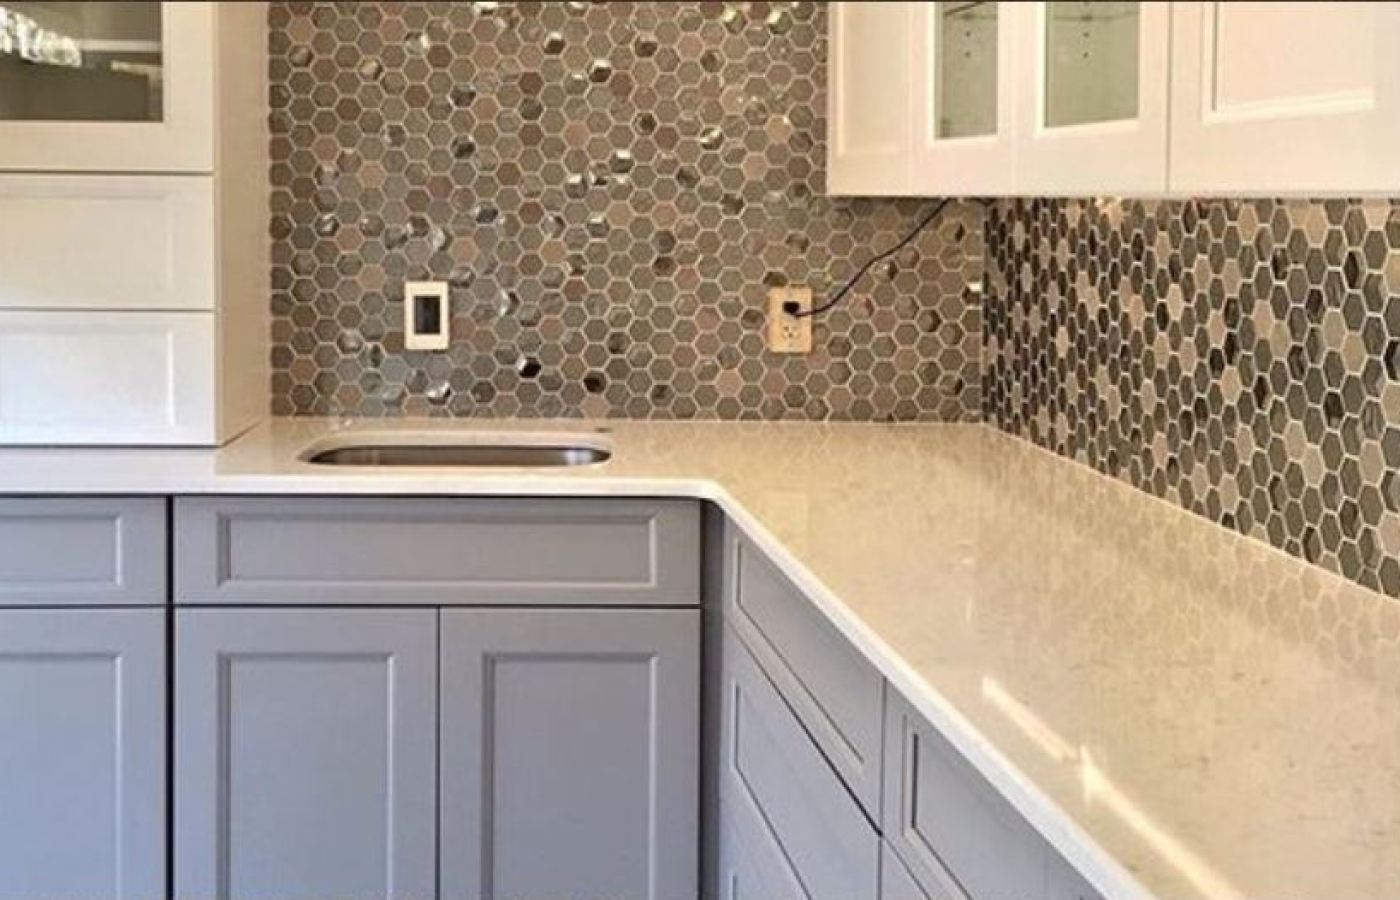 Glazzio Queen's Lair Octagon Mosaics  available at Custom Home Interiors!